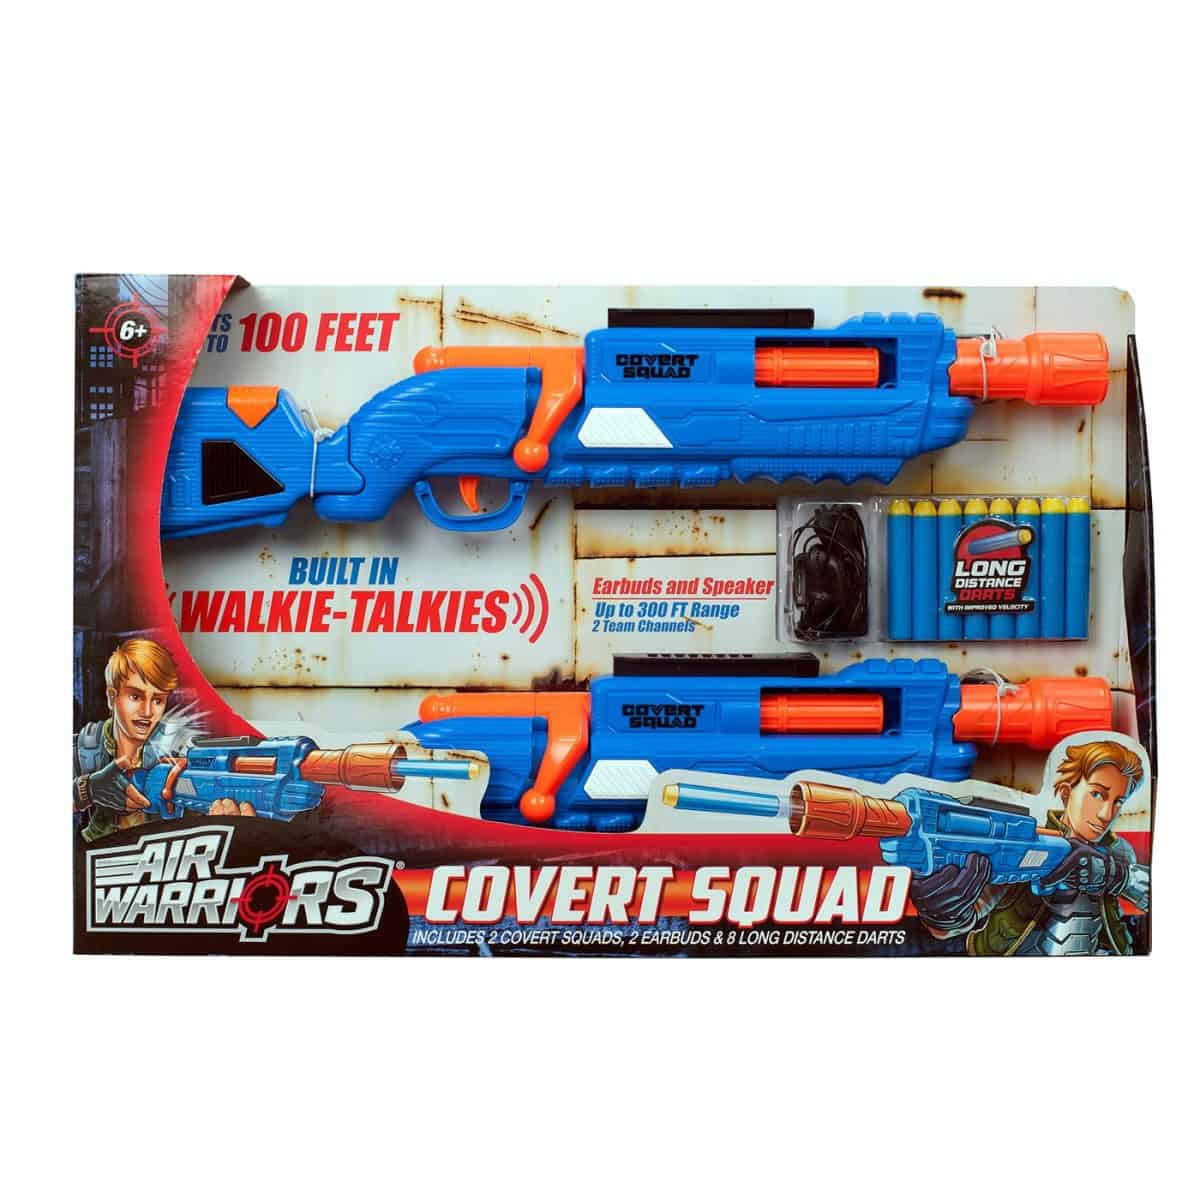 Buzz Bee Toys Air Warriors Covert Squad dart blasters daily mom parent portal unique gifts for kids